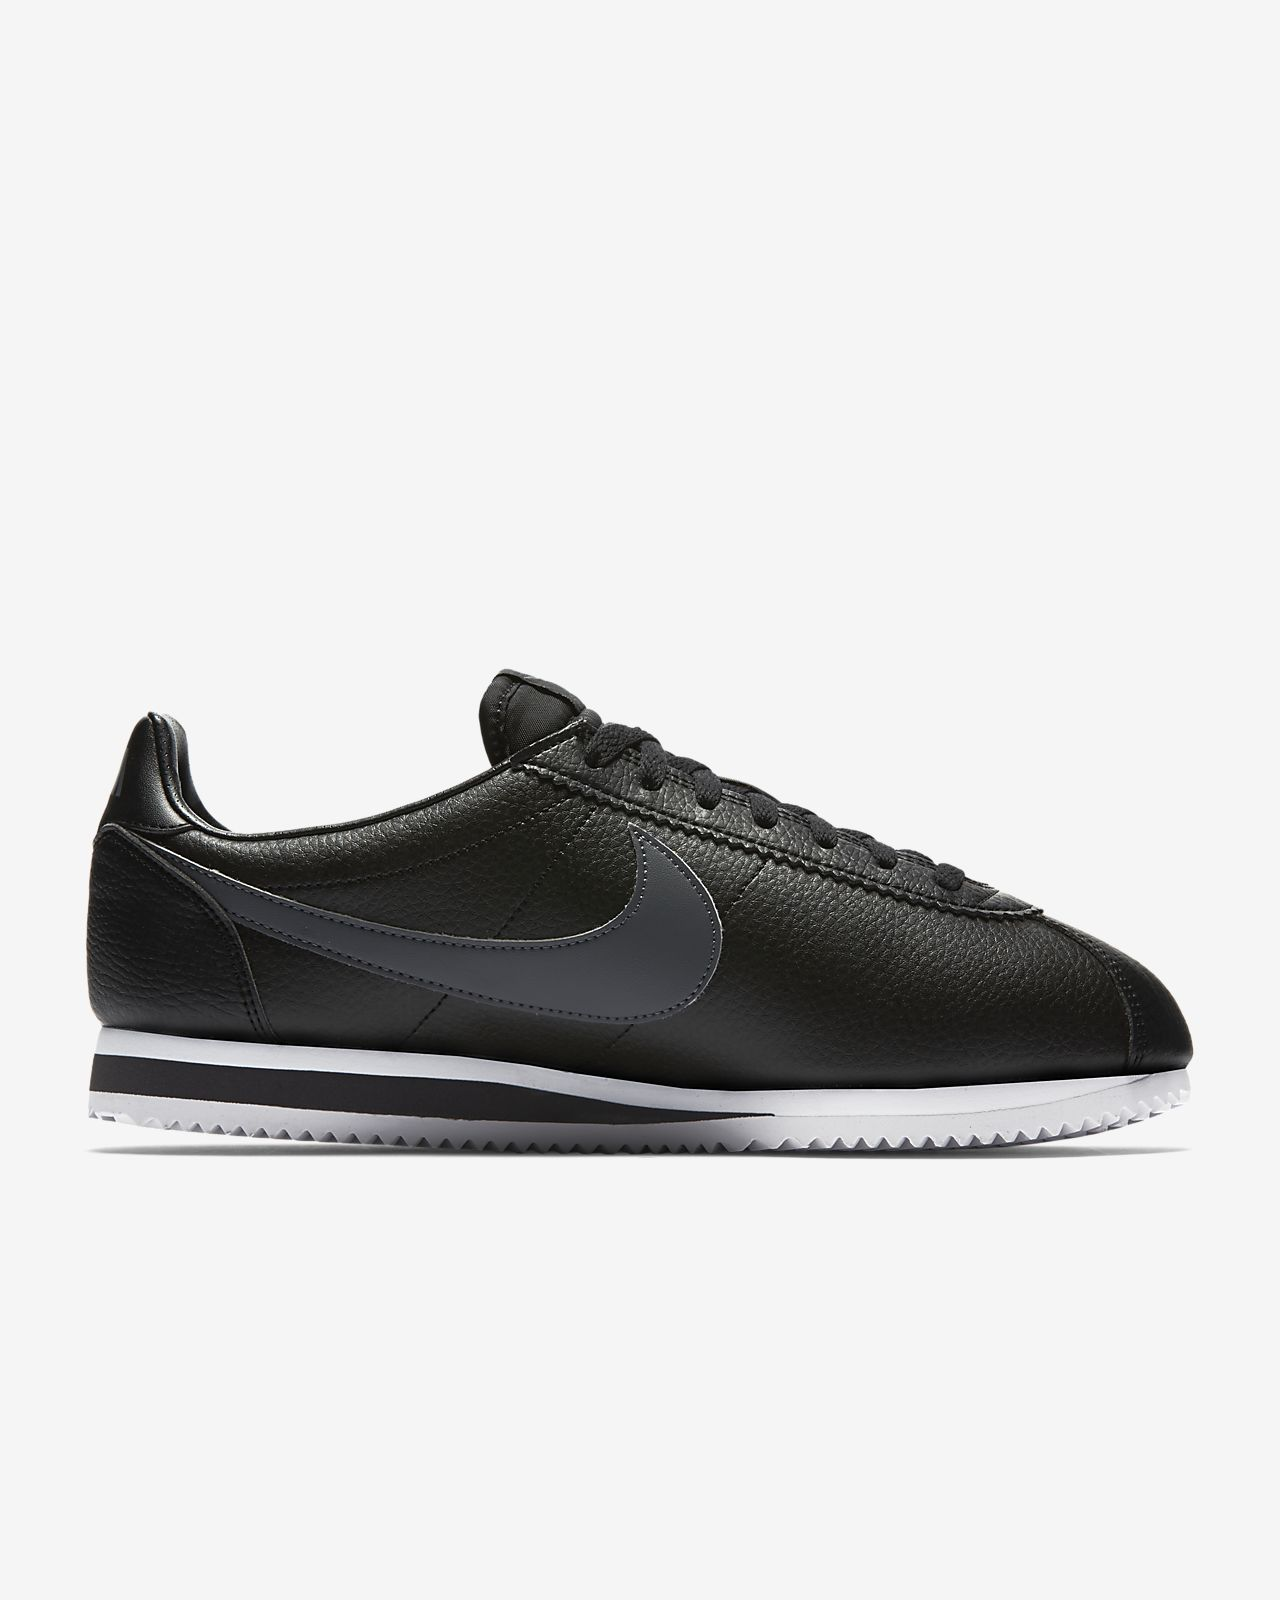 Marques Chaussure homme Nike homme Classic Cortez Nylon Black/white